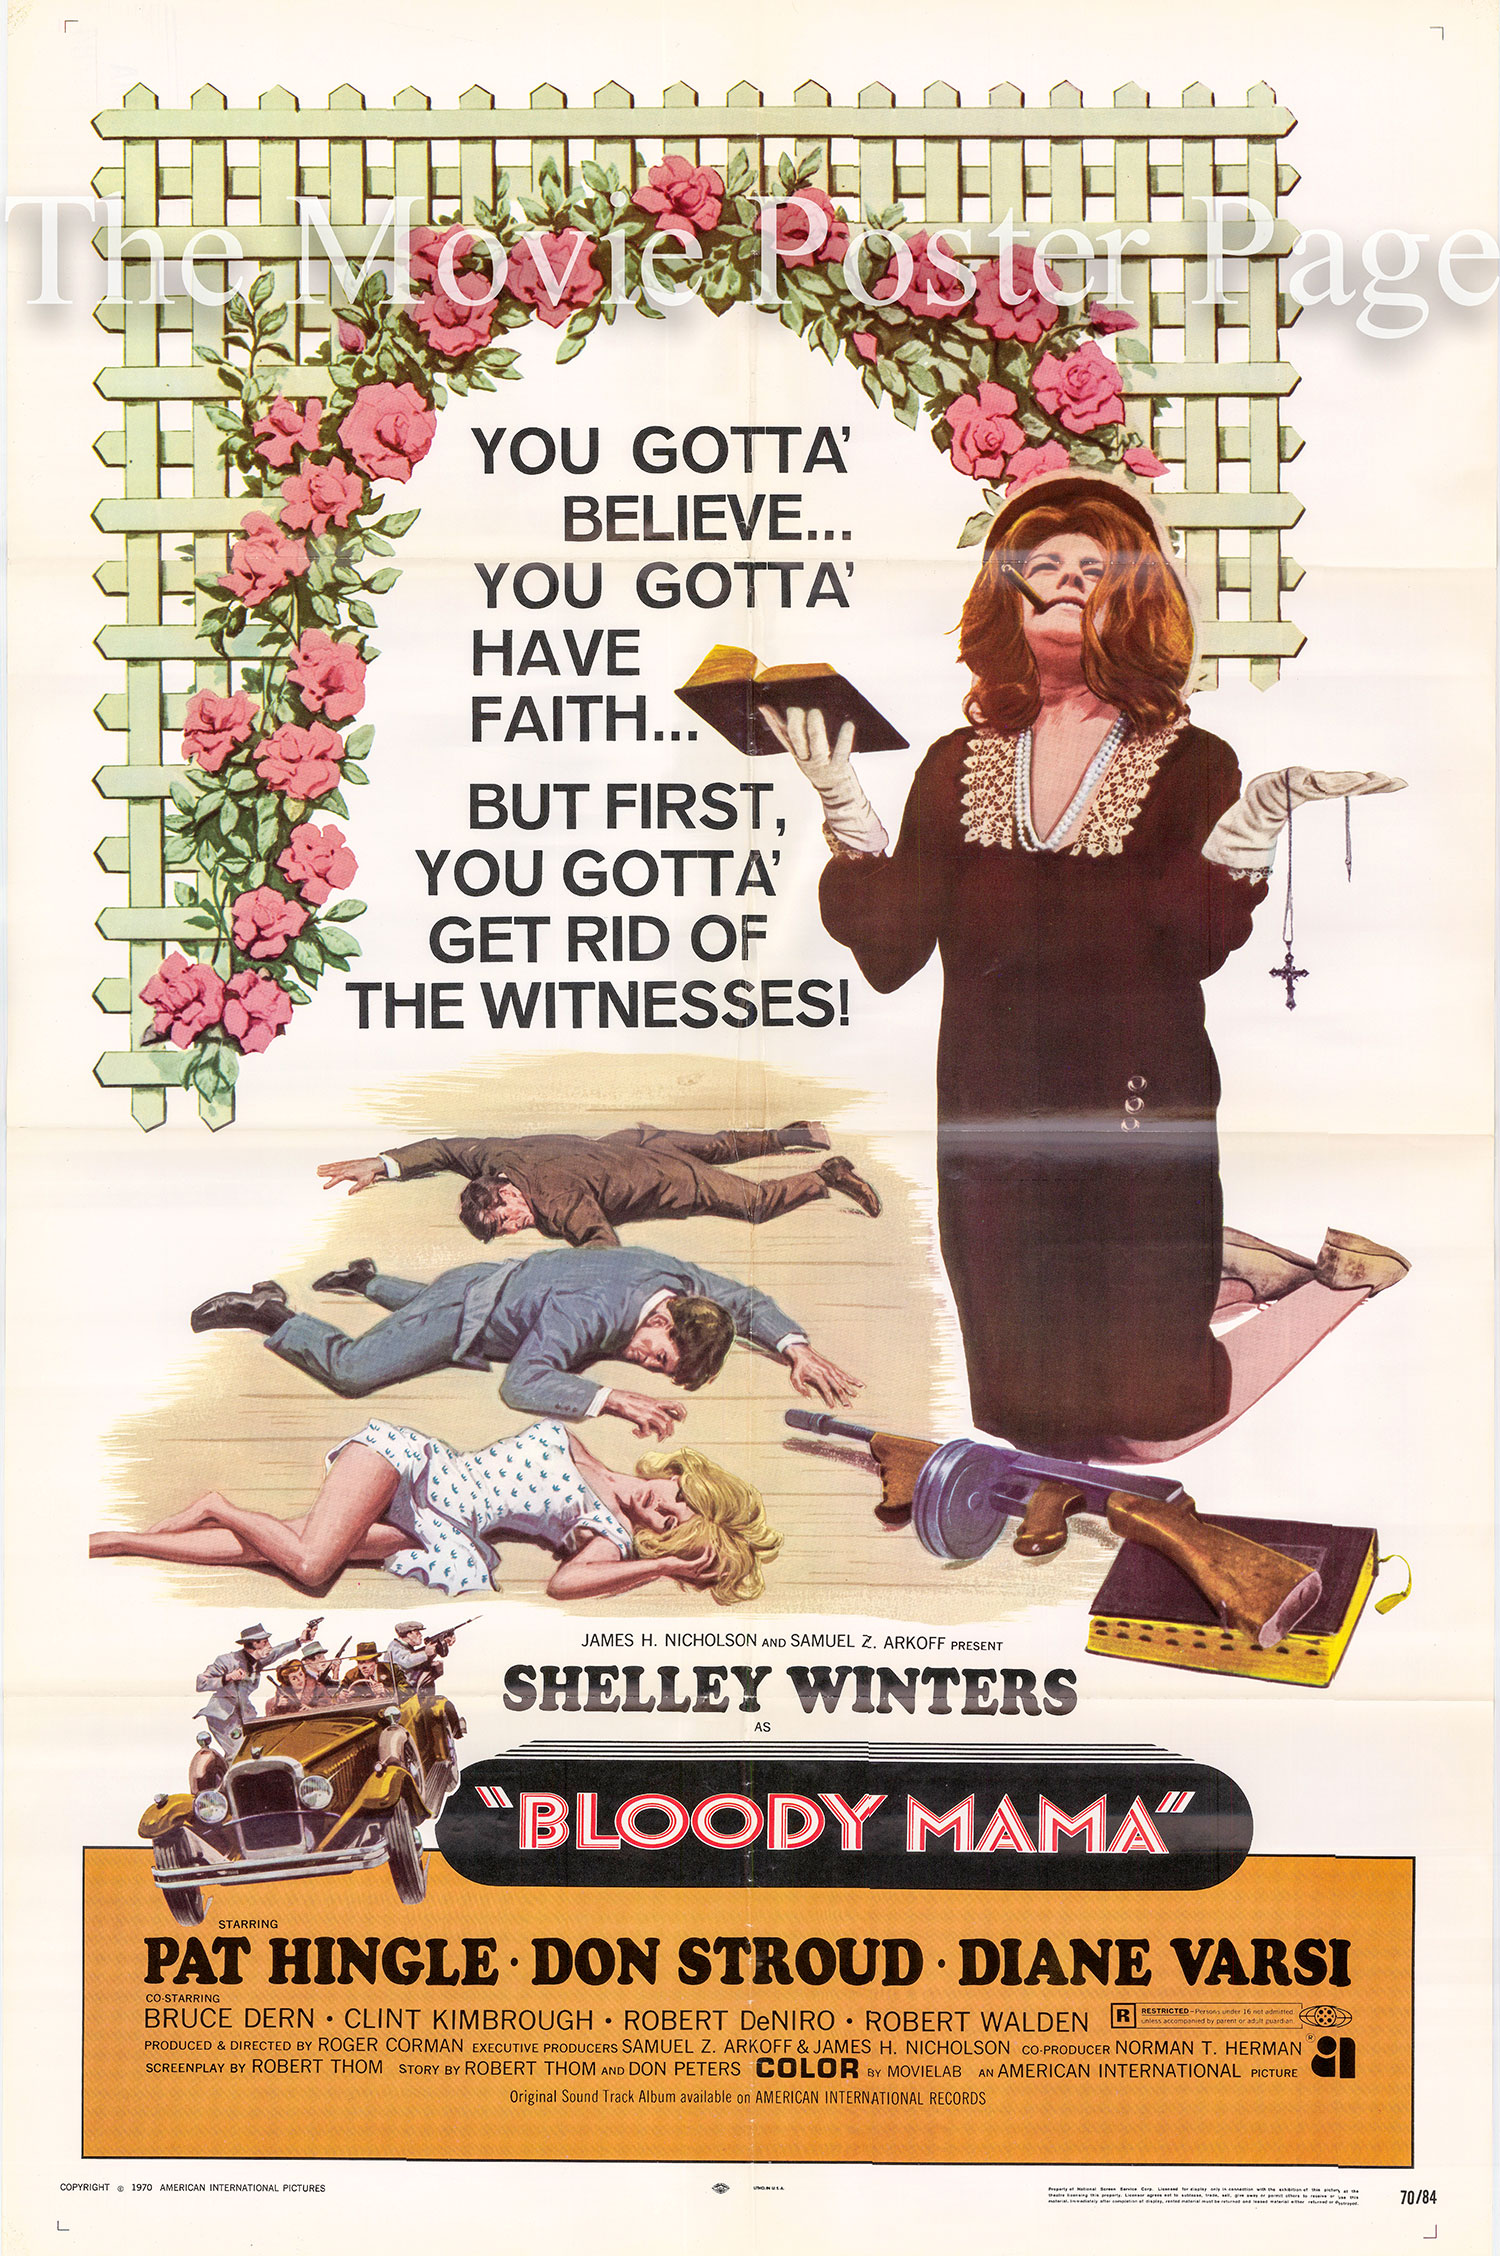 Pictured is a US promotional poster for the 1970 Roger Corman film Bloody Mama starring Shelley Winters as Kate Barker.